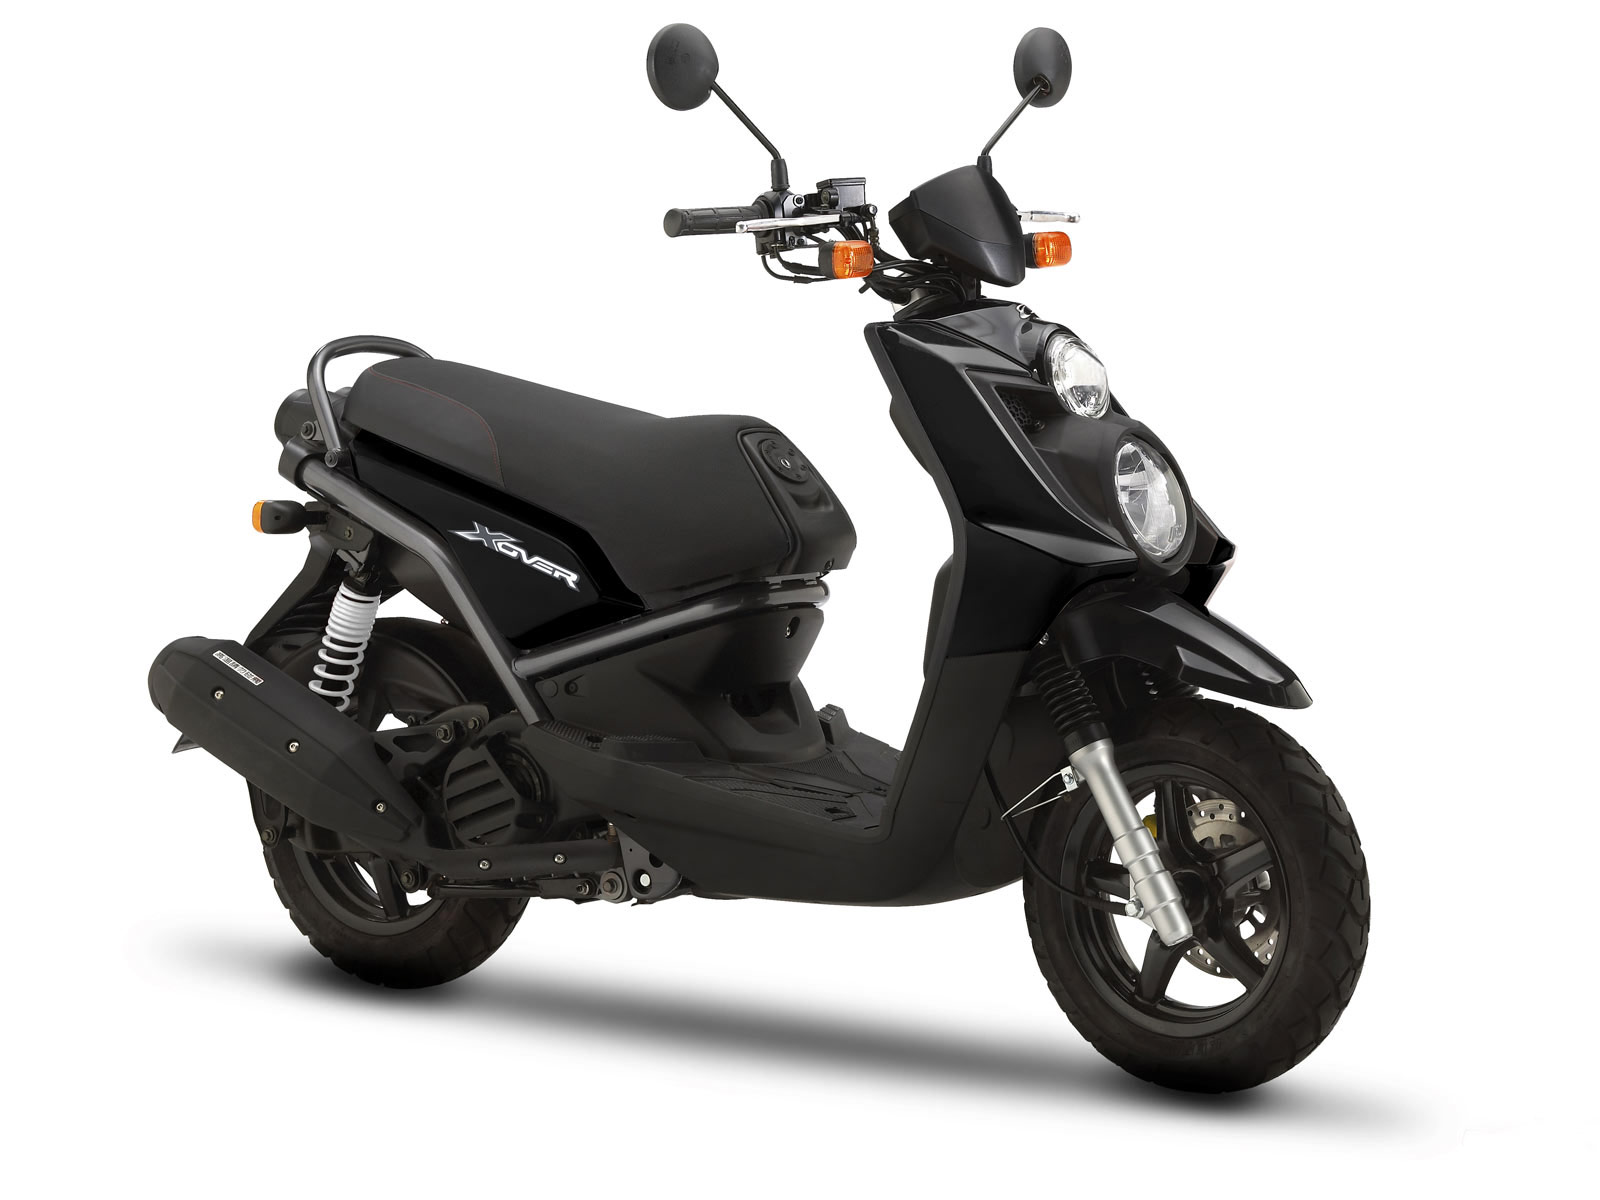 2010 mbk x over scooter pictures accident lawyers info. Black Bedroom Furniture Sets. Home Design Ideas